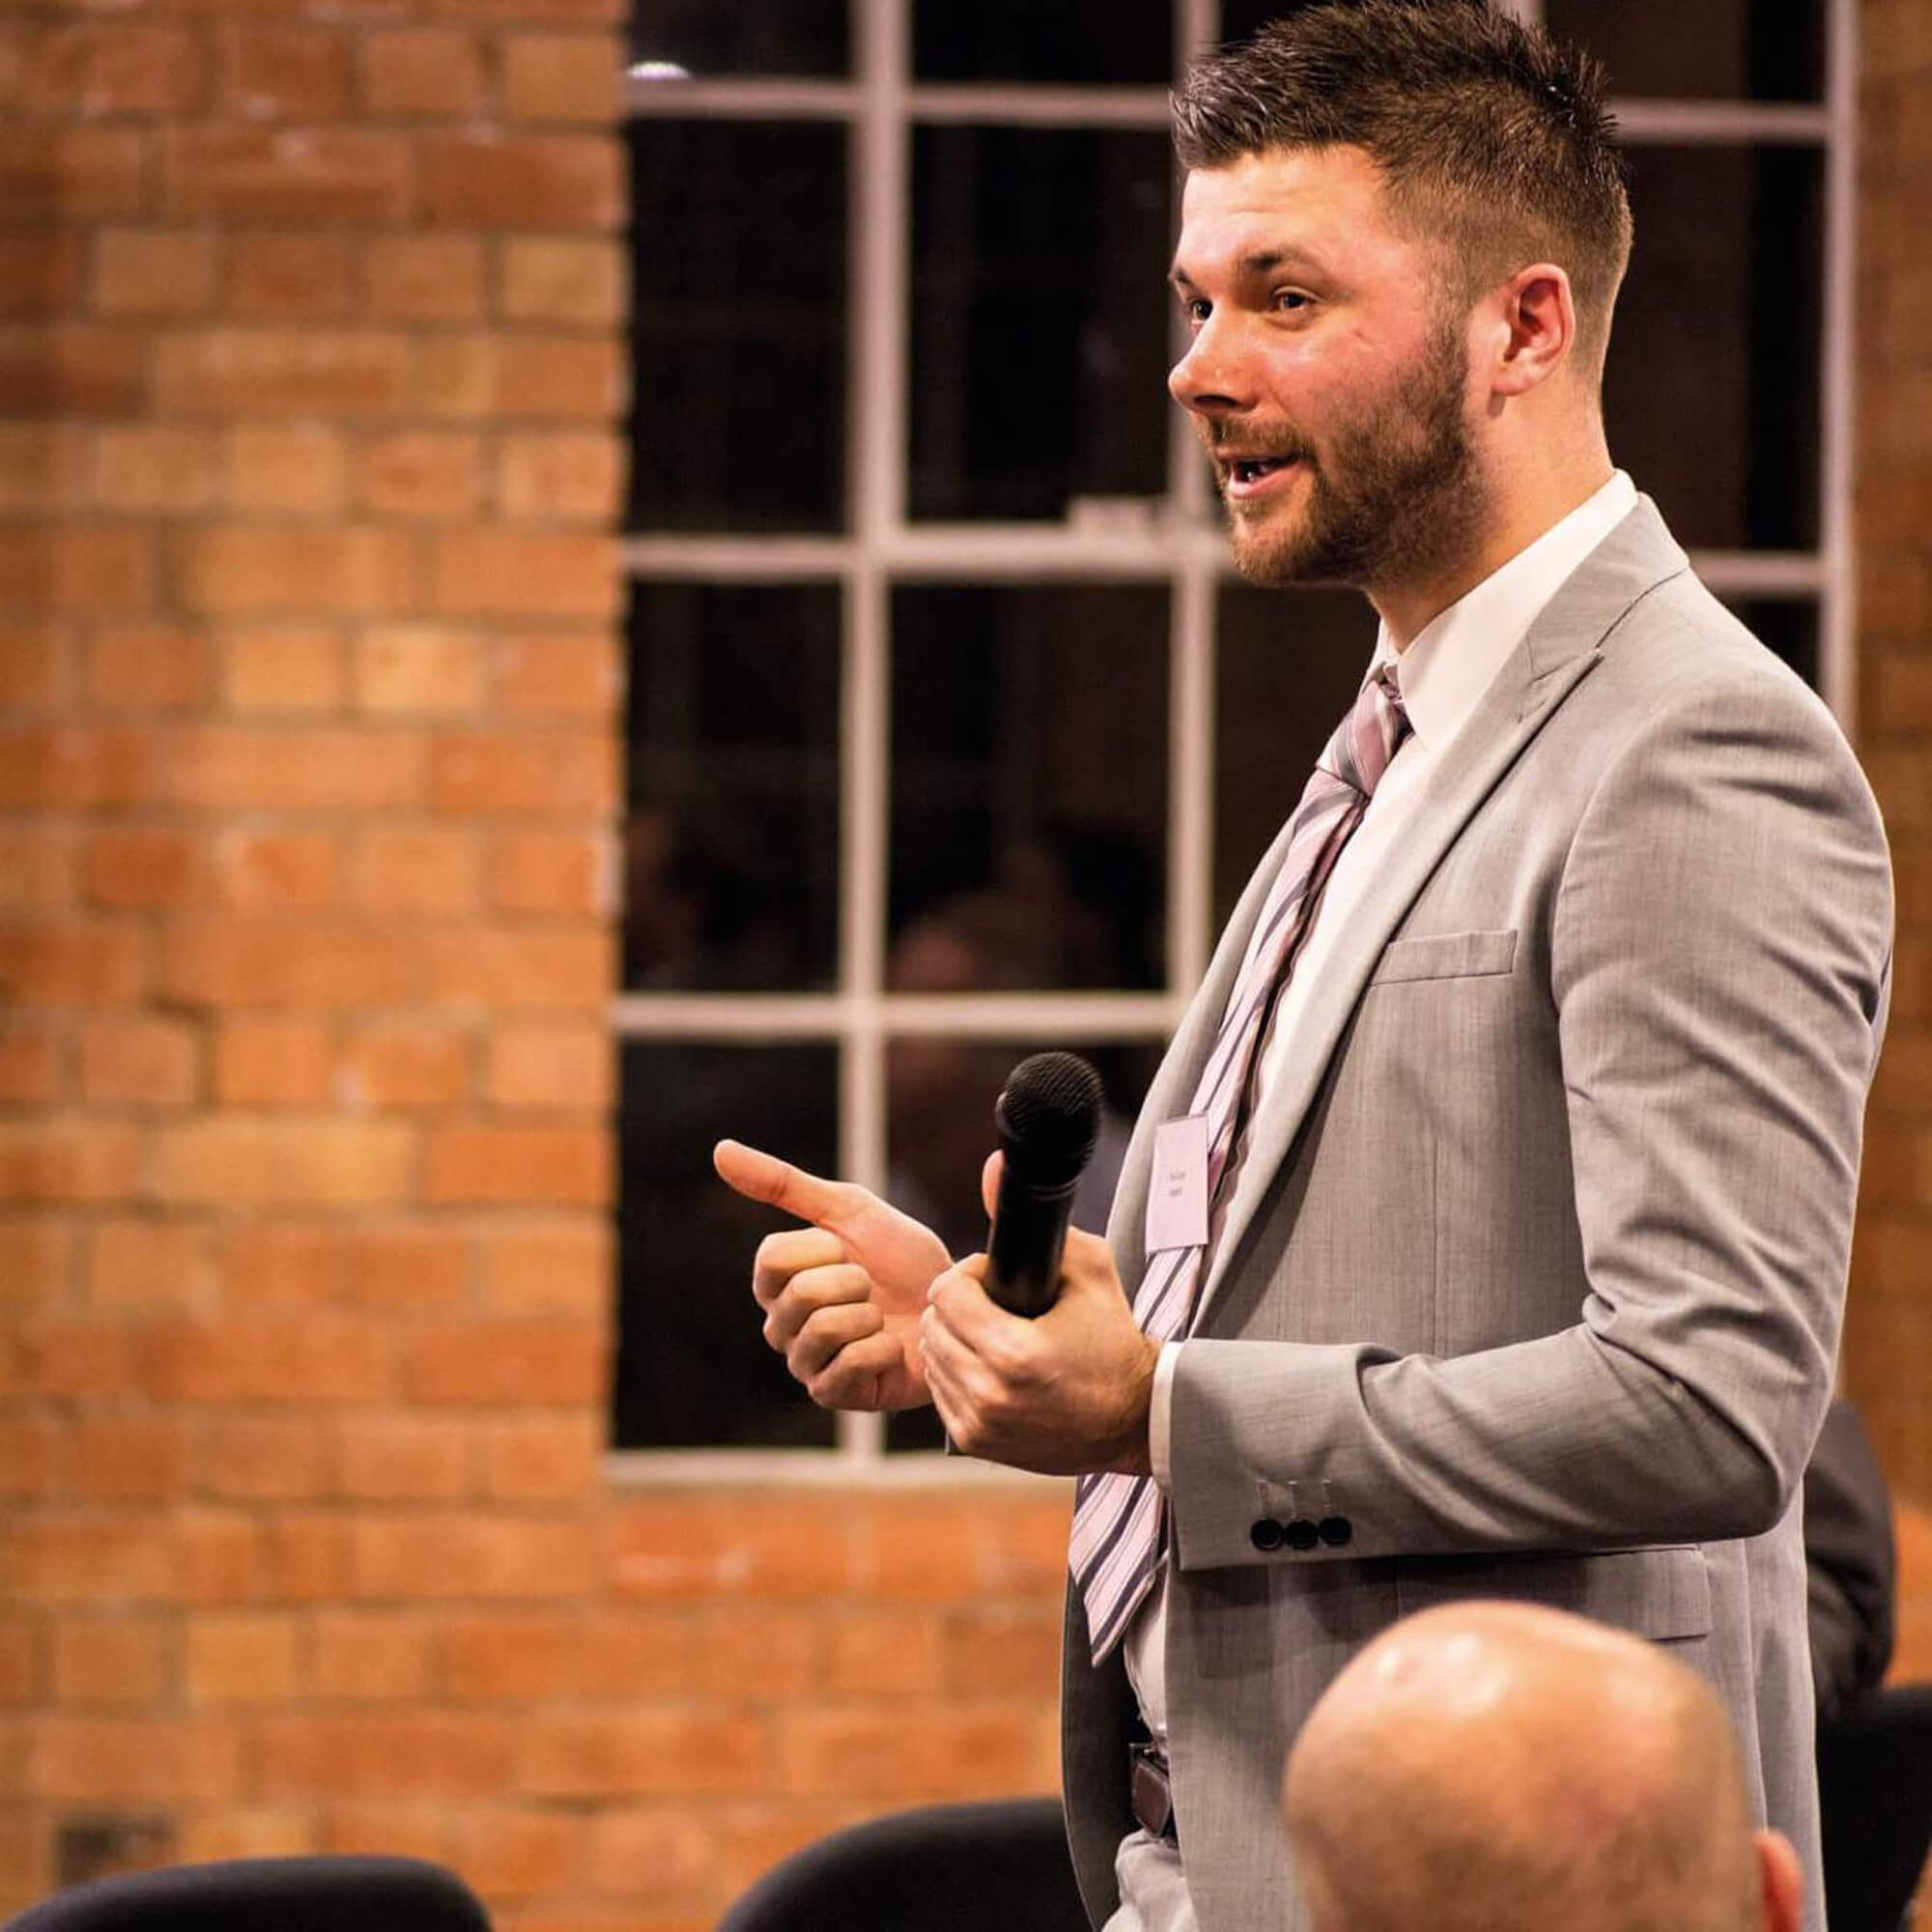 man delivers bsuiness presentation in front of audience